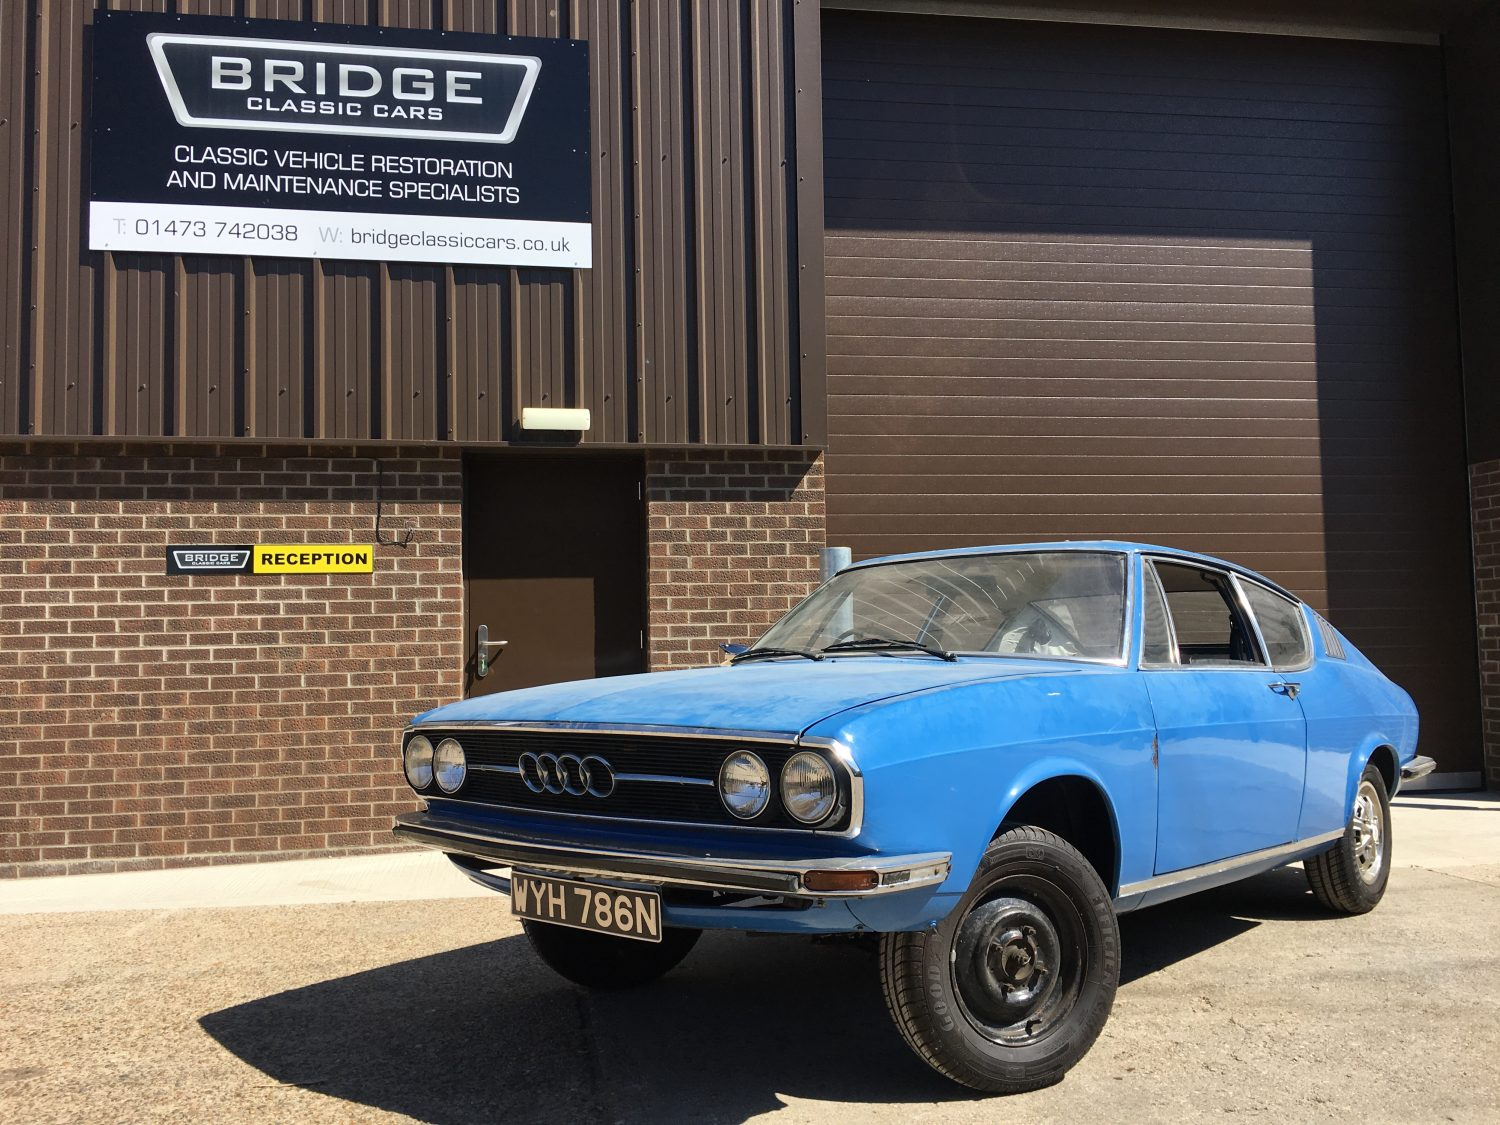 1974 Audi 100 Coupe S in our workshops